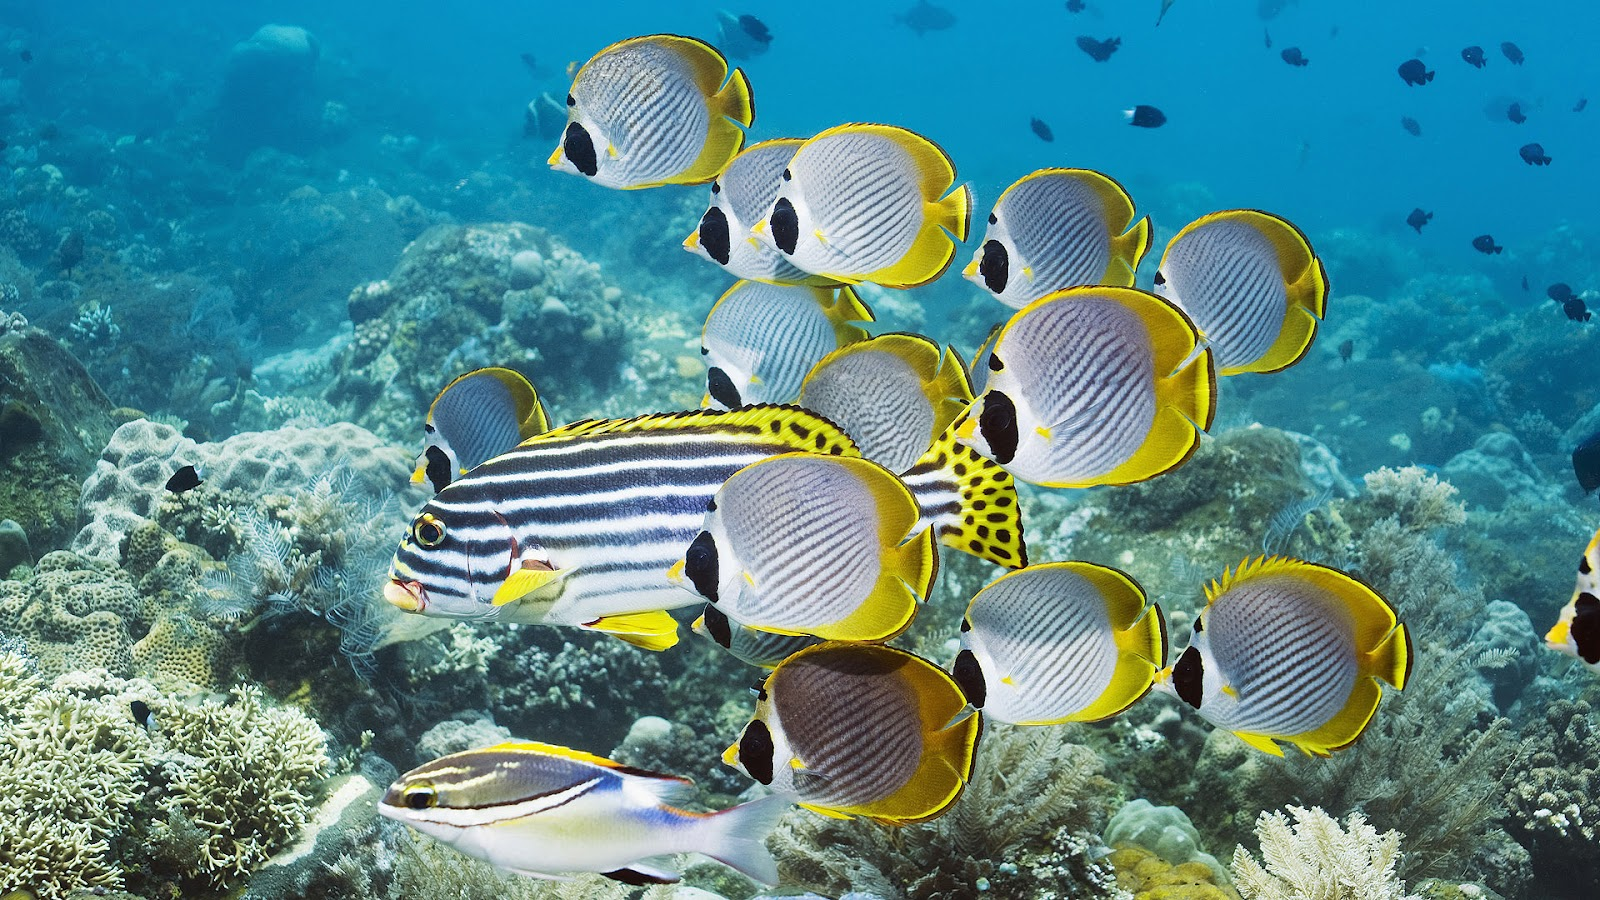 Wallpaper of a Group of Swimming Tropical Fish | HD fish wallpapers Wallpaper